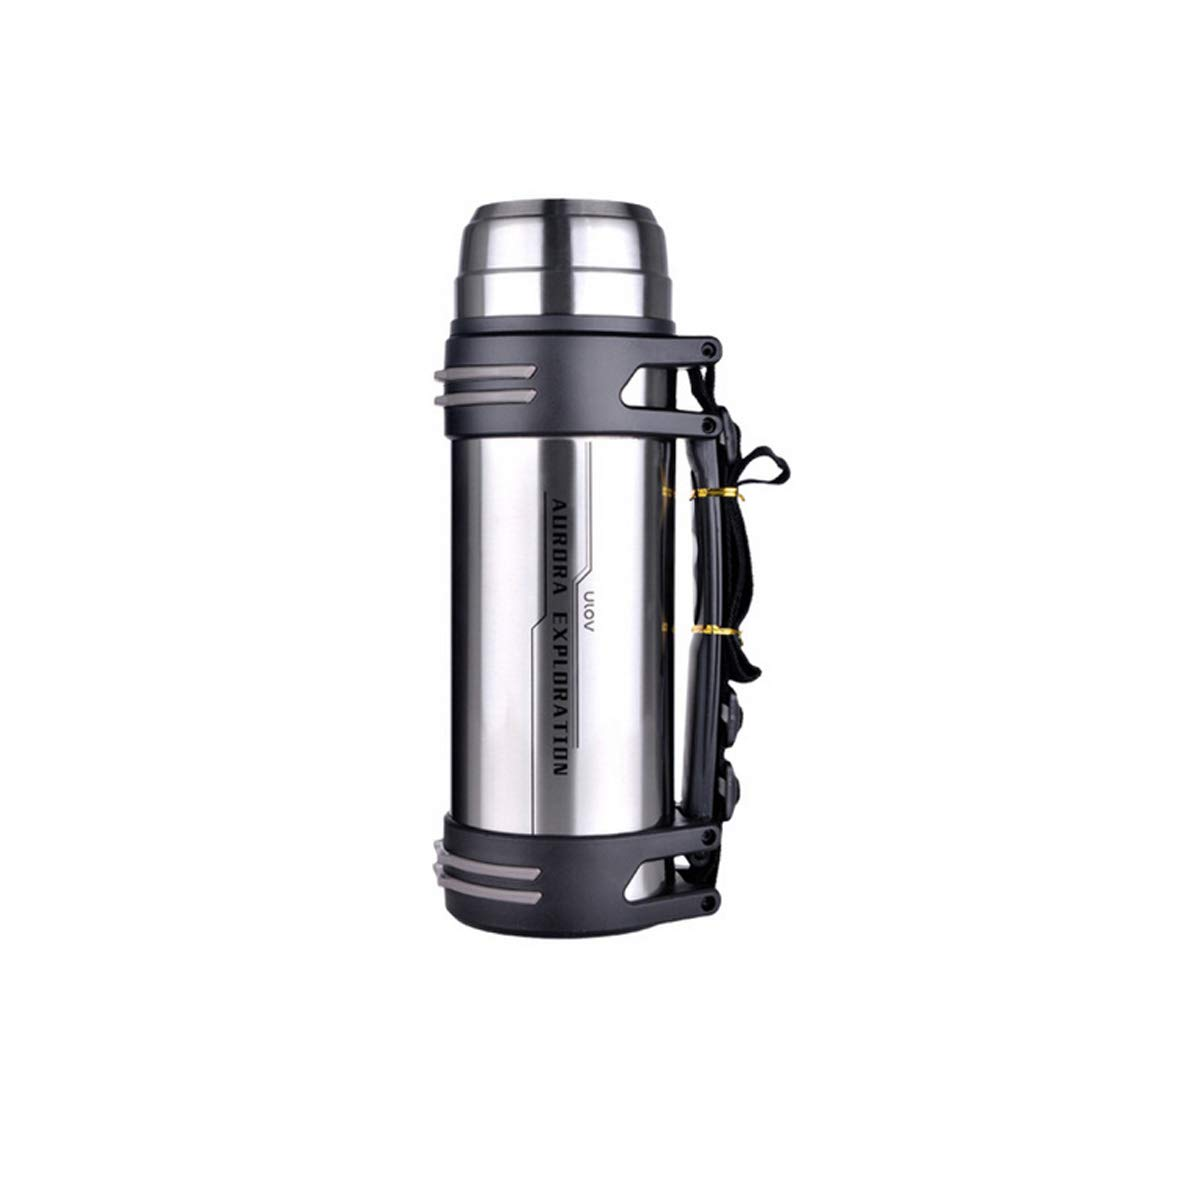 Stainless steel color 74.4oz Hengxiang Coffee Carafe Men and Women Mug Large Capacity Thermos Kettle Carafe Coffee Carafe Outdoor Stainless Steel Sports Travel Carafe Car Thermos 74.4 Ounces Travel Termoses